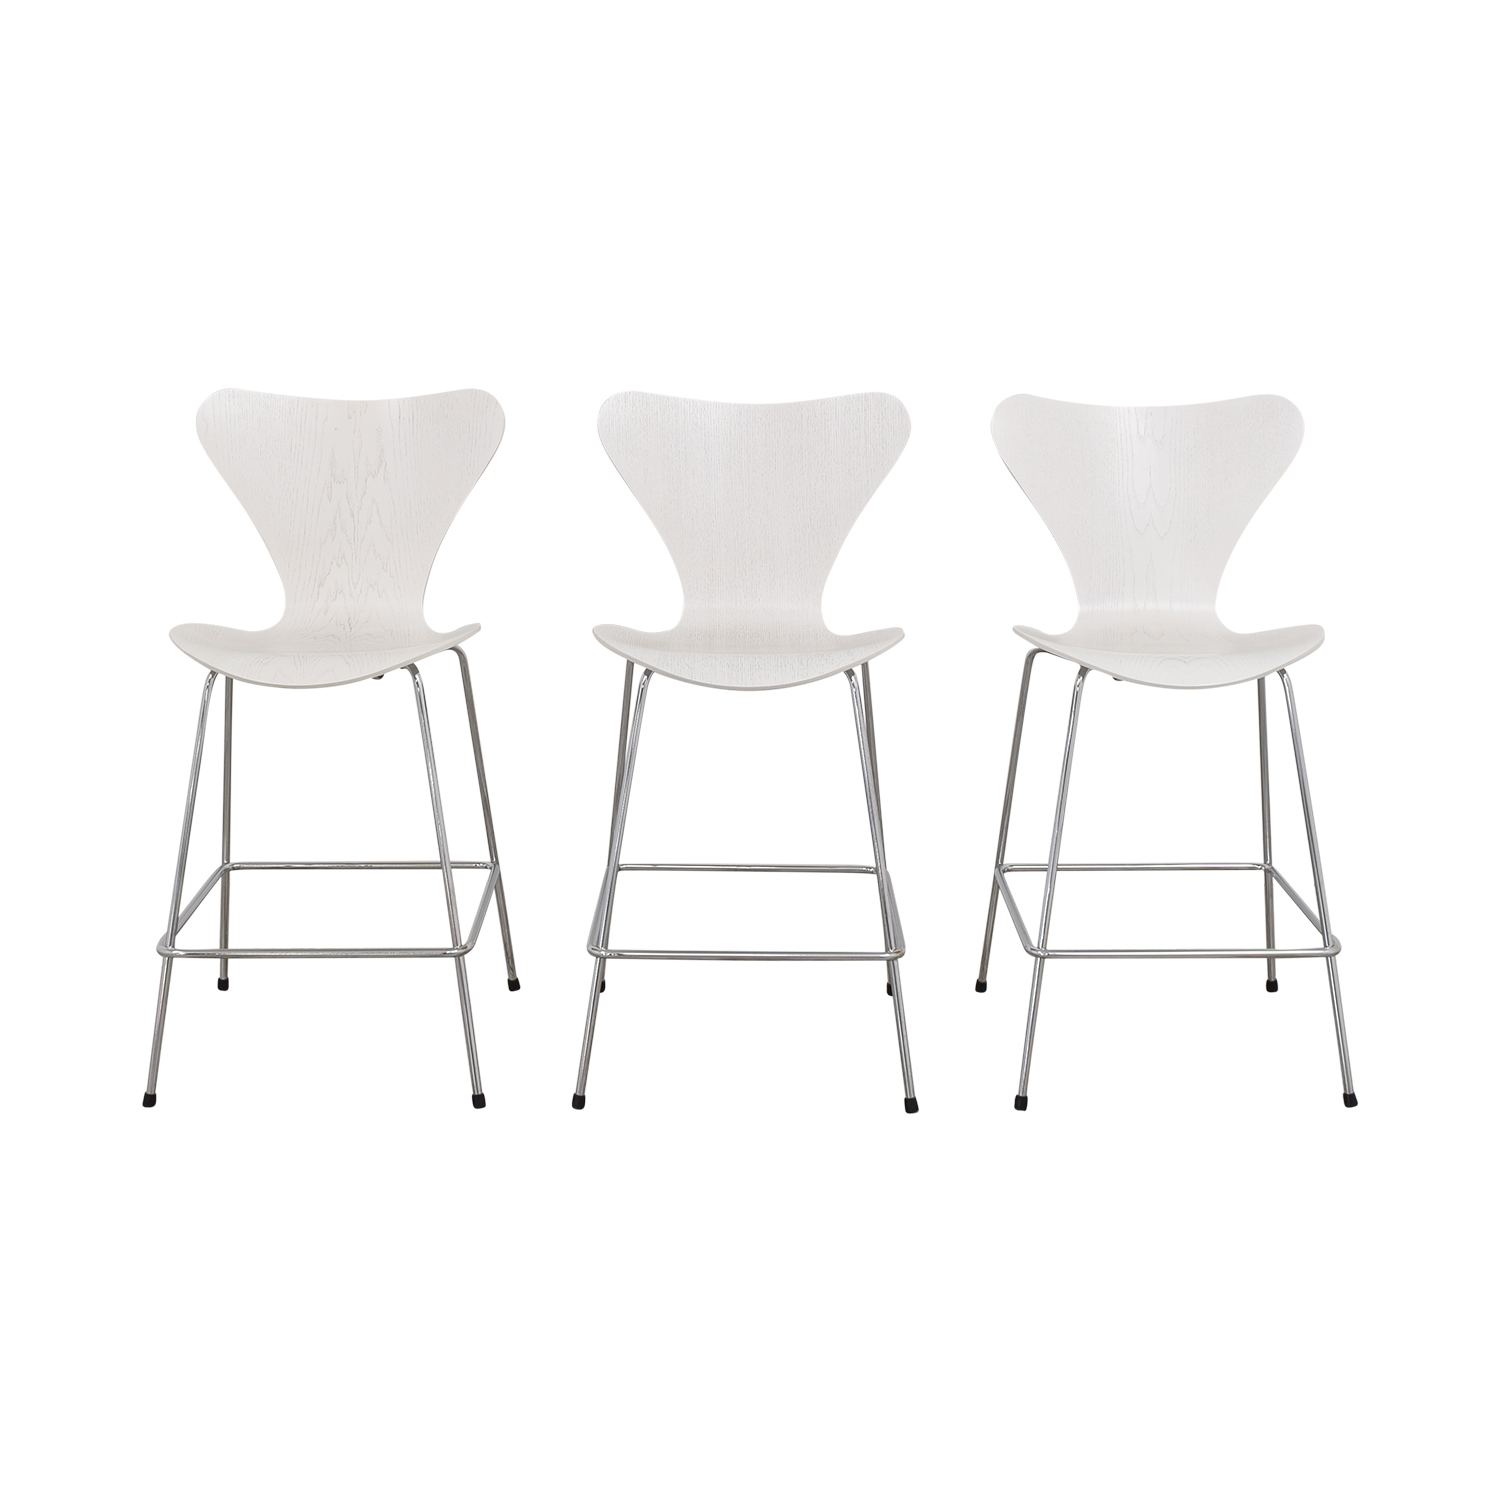 Design Within Reach Design Within Reach Serie 7 Counter Stools ma